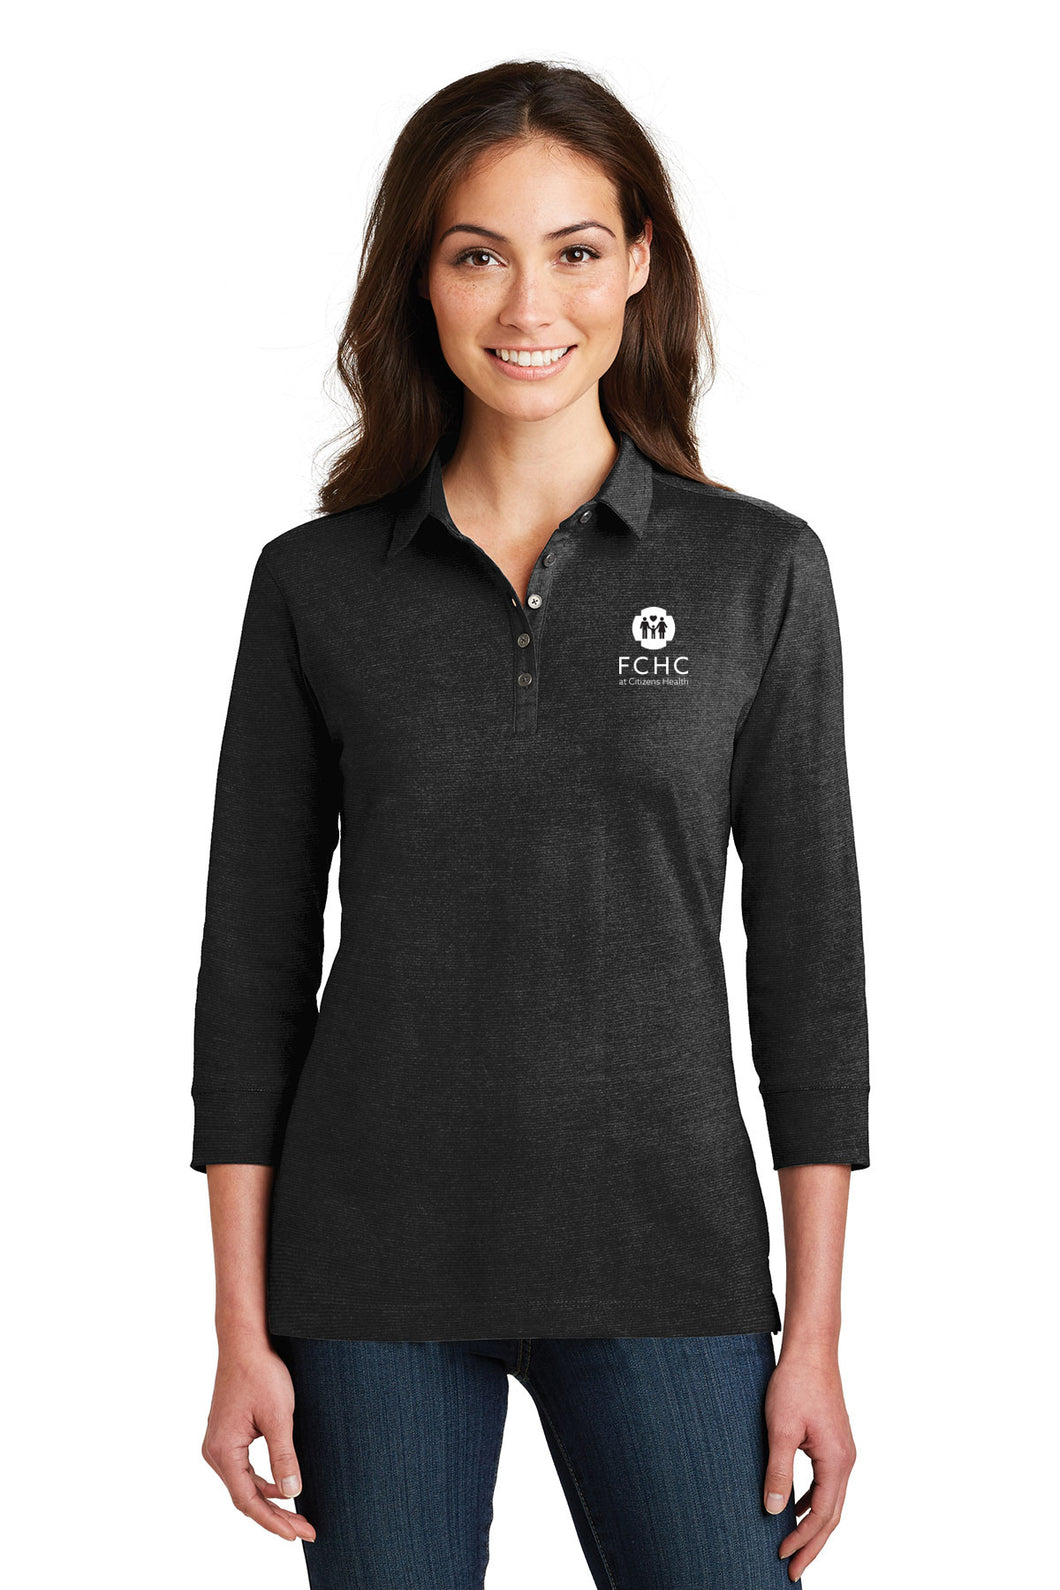 Port Authority® Ladies 3/4-Sleeve Meridian Cotton Blend Polo - FCHC